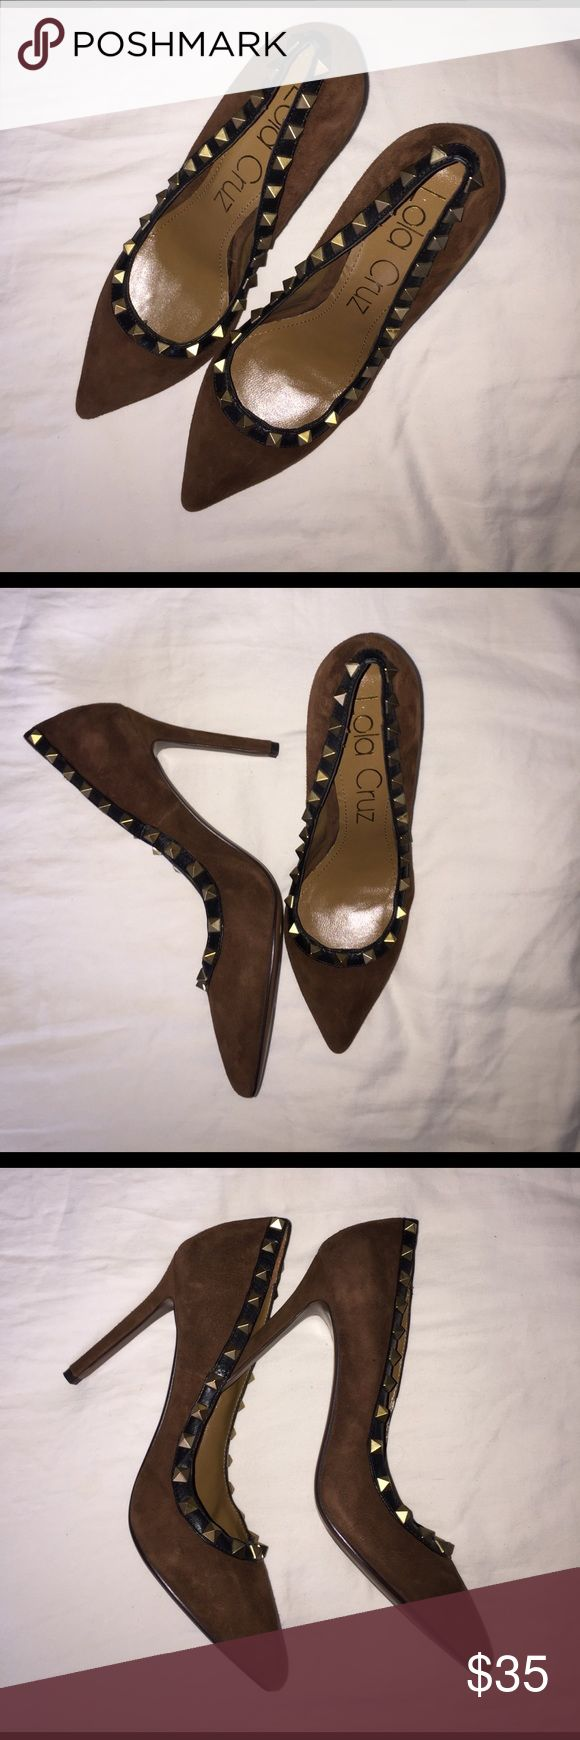 Lola Cruz Suede studded pump Valentino dupe Almost exact replica for Valentino Rockstud pump. Lola Cruz brown Suede gold toned studded court shoe. Size 40 but fits like an 8.5 Worn once for a wedding rehearsal. Very well made but too small for me. Lola Cruz Shoes Heels